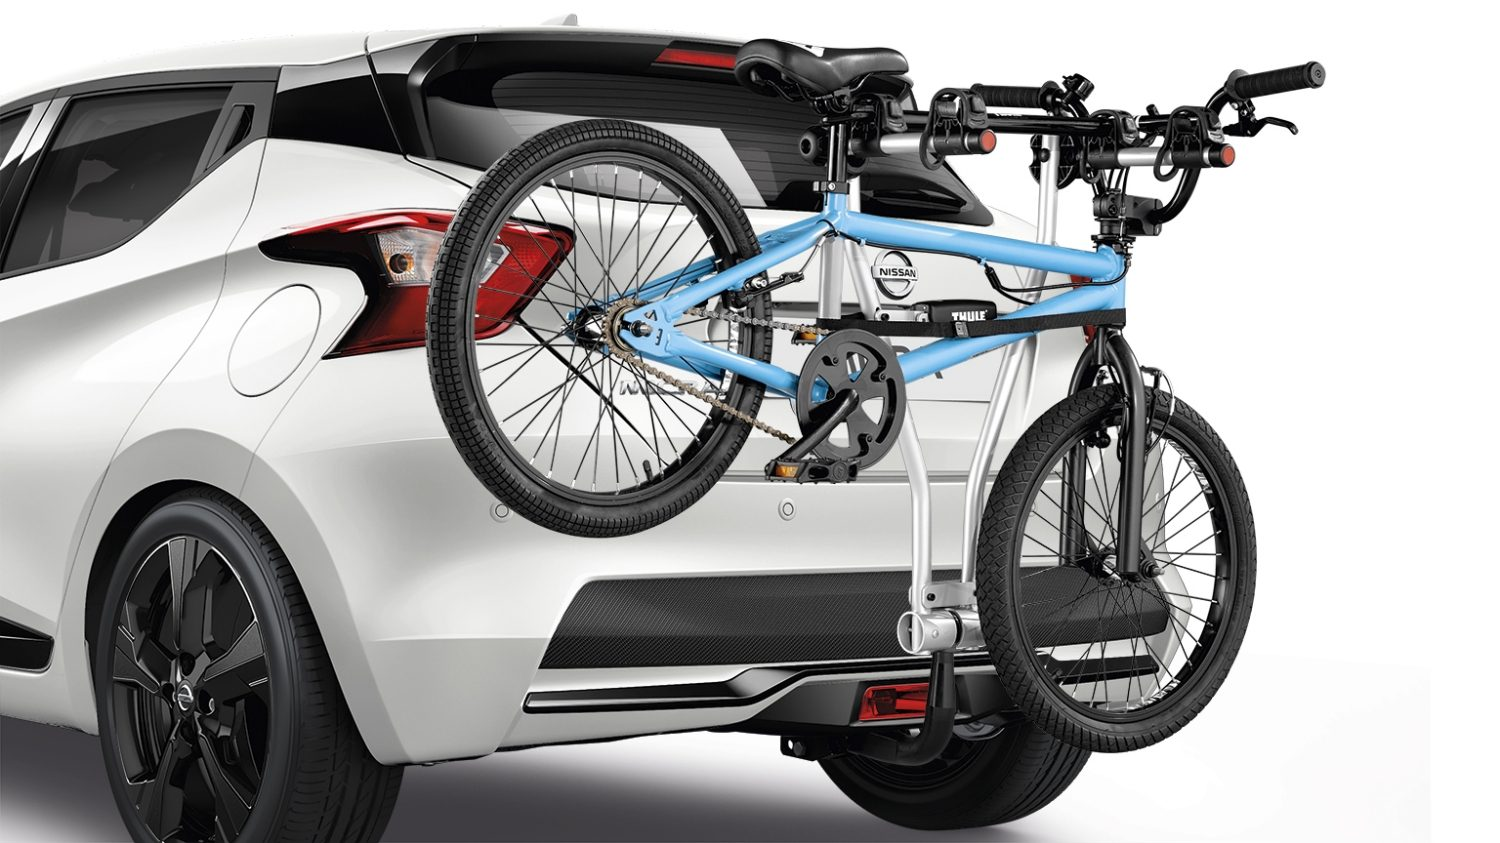 Nissan Micra Bike Carrier Foldable 2 Bikes